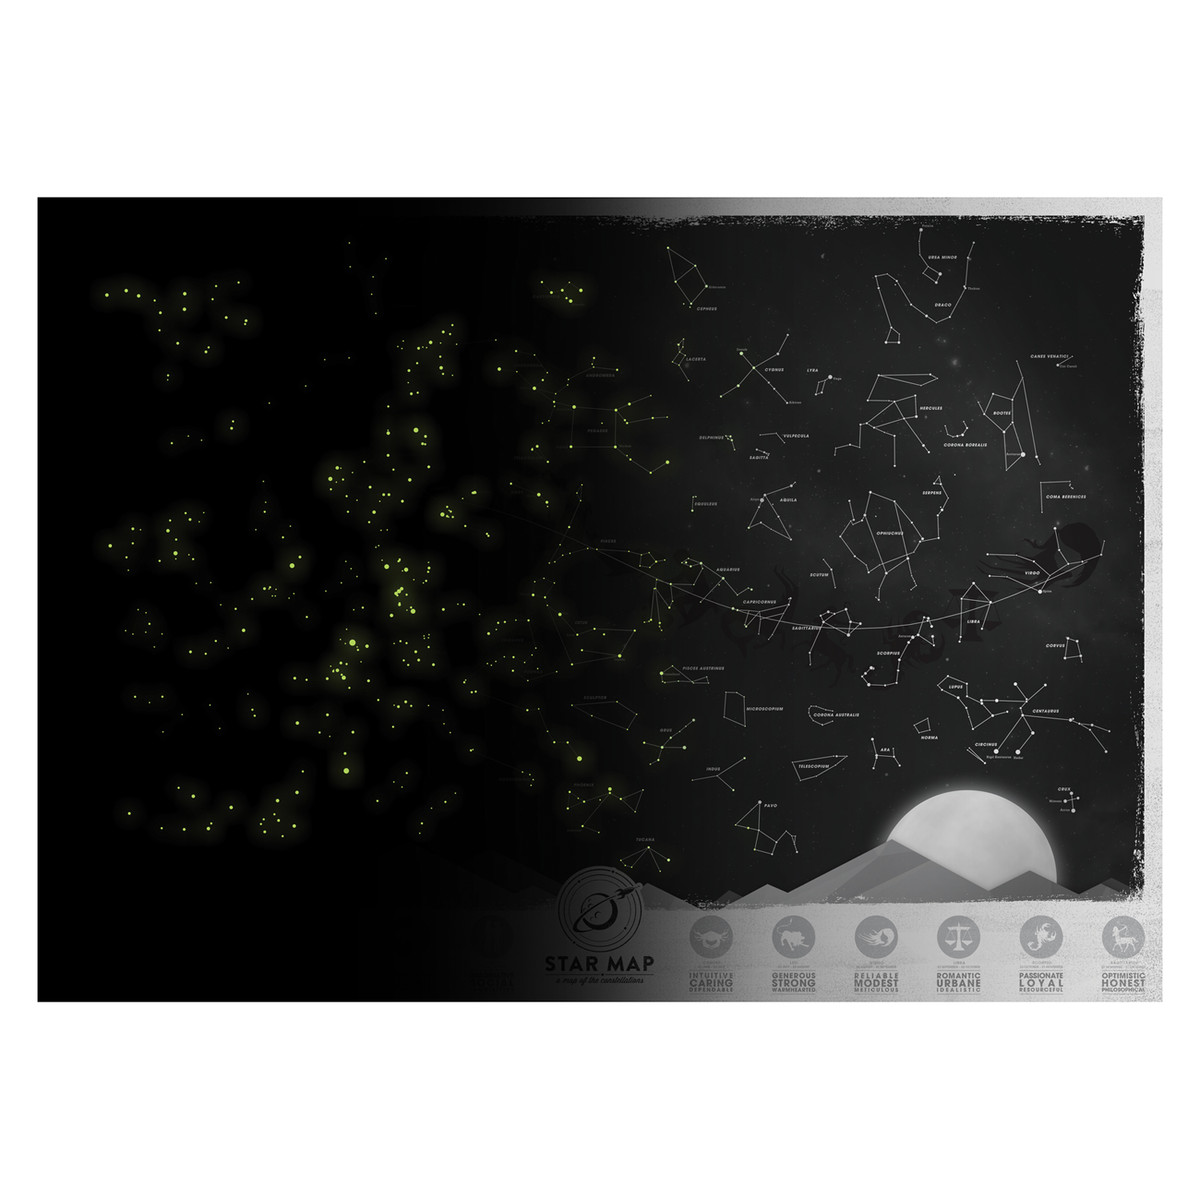 Star Map glow in the dark | The Design Gift Shop